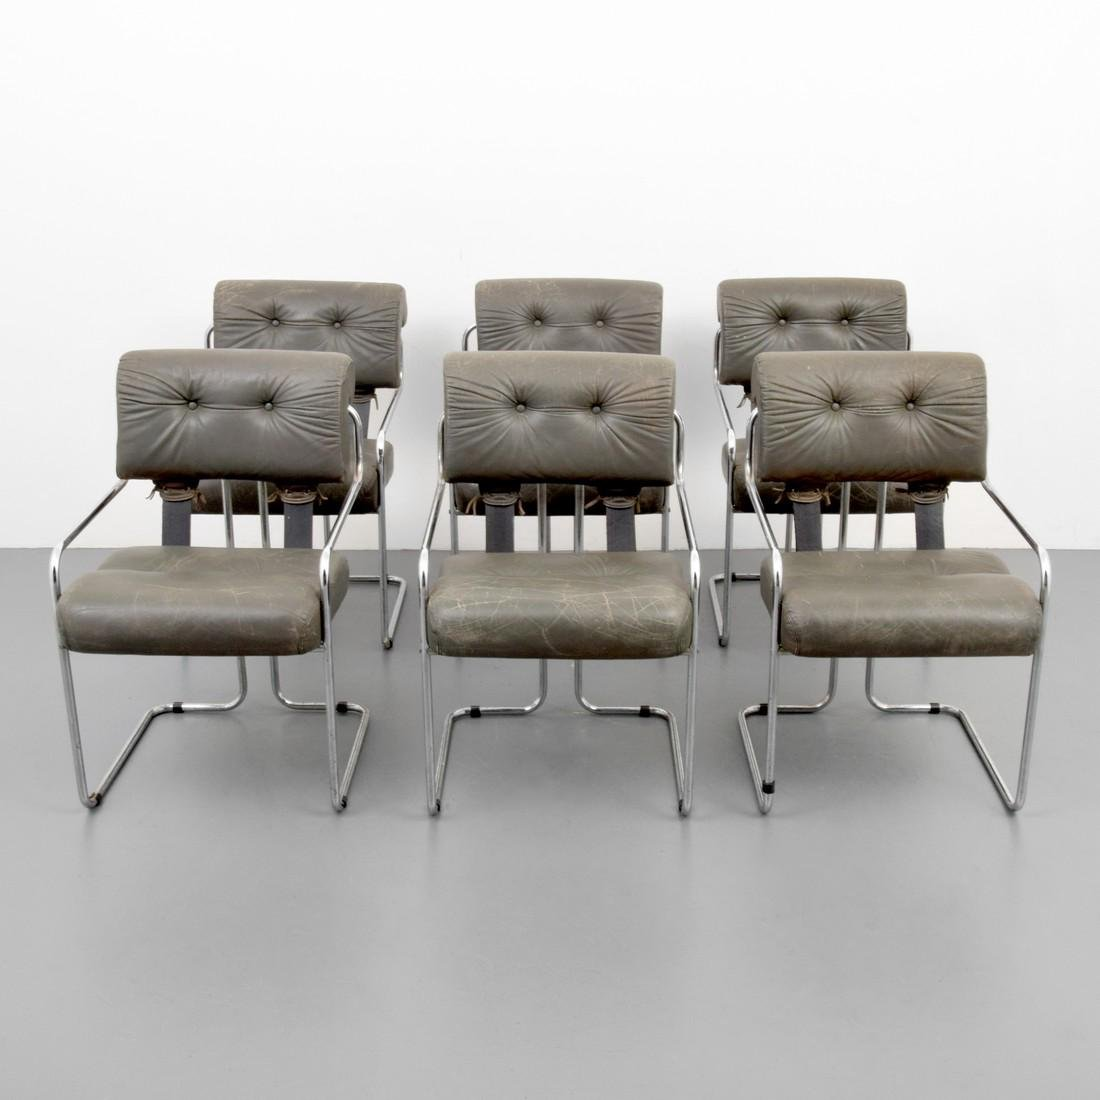 Guido Faleschini TUCROMA Arm Chairs, Set of 6 - 10